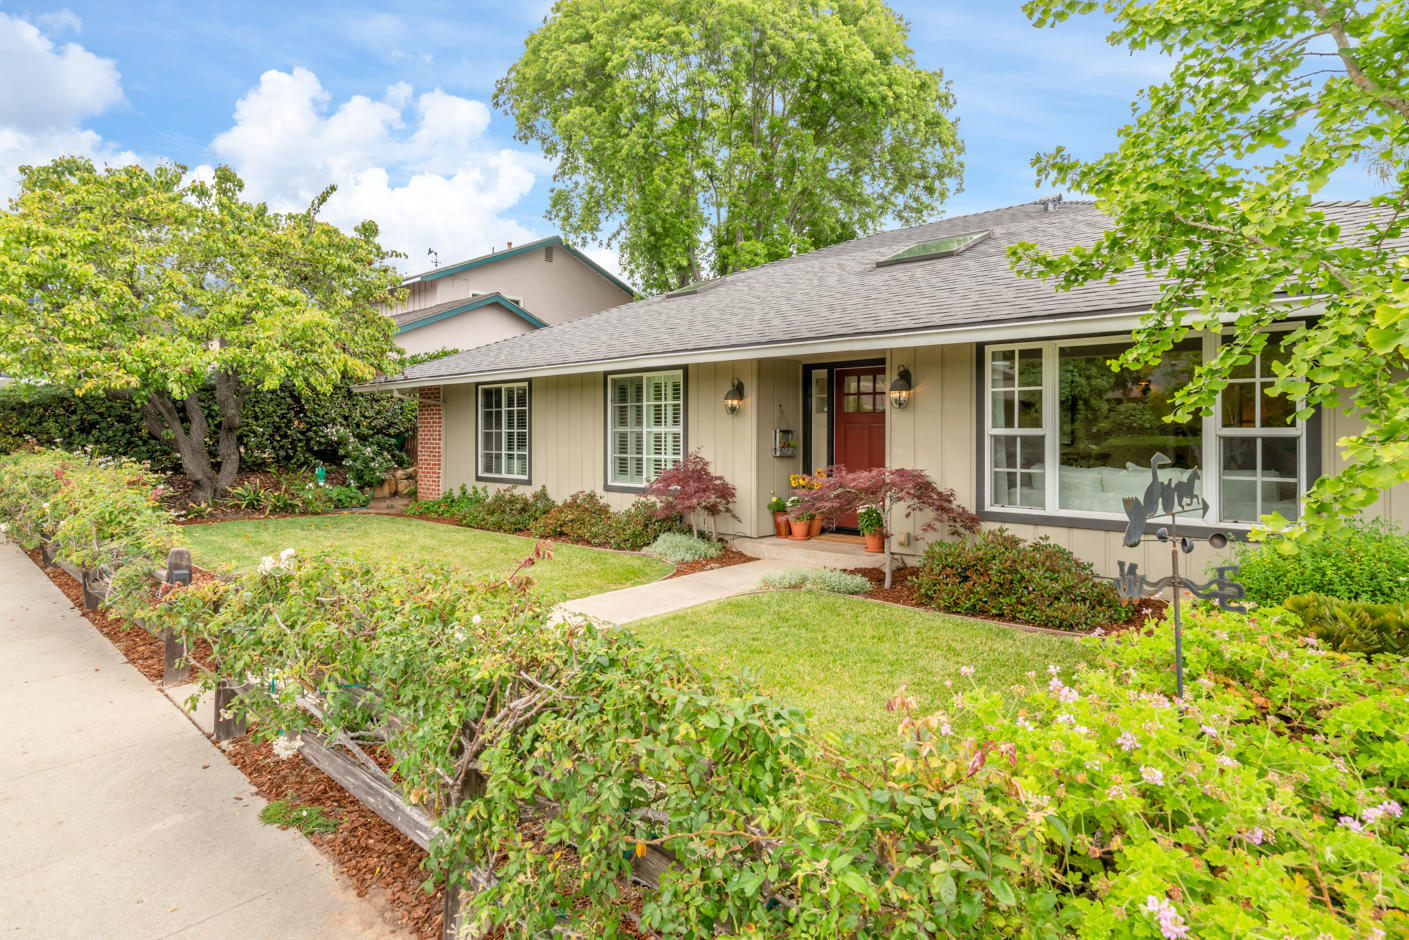 SOLD: Remodeled Charmer – Kings Way